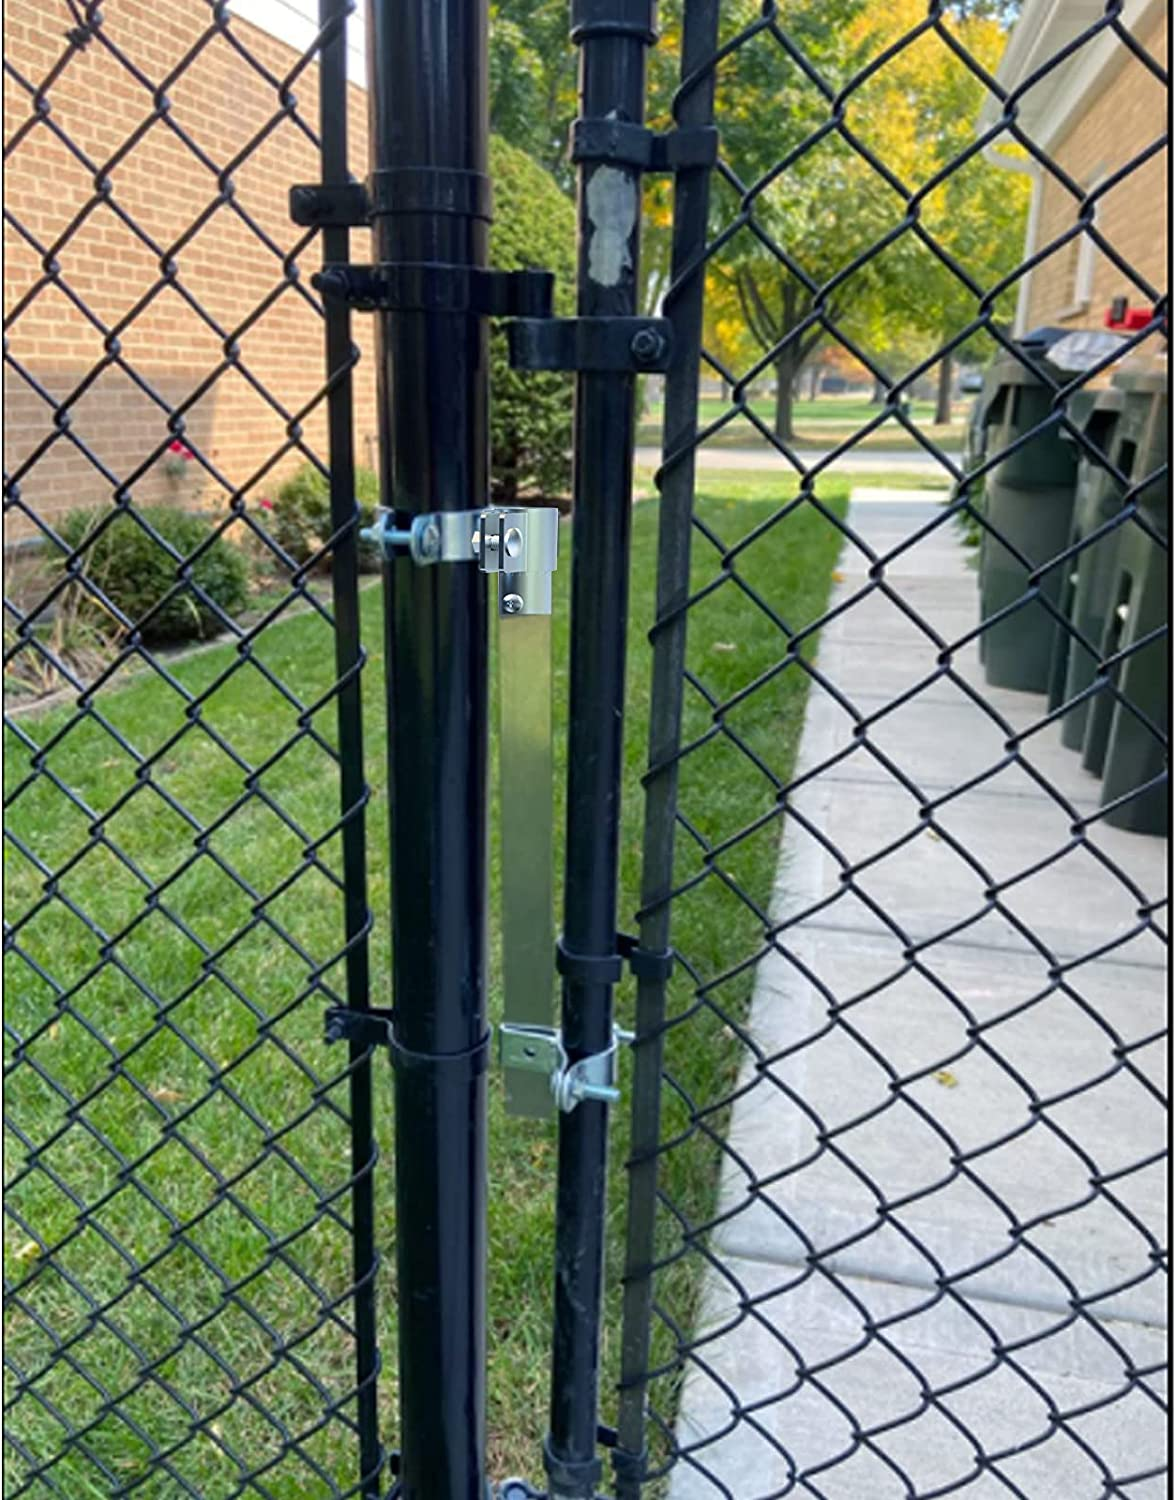 Automatic Gate Closer Shrapnel Door Closer for Side Gate,Self Closing Auto Backyard Gate Closer with Adjustable Closing Tension,Chain Link Fence Up to 4 Foot Wide Dog& Pool Door